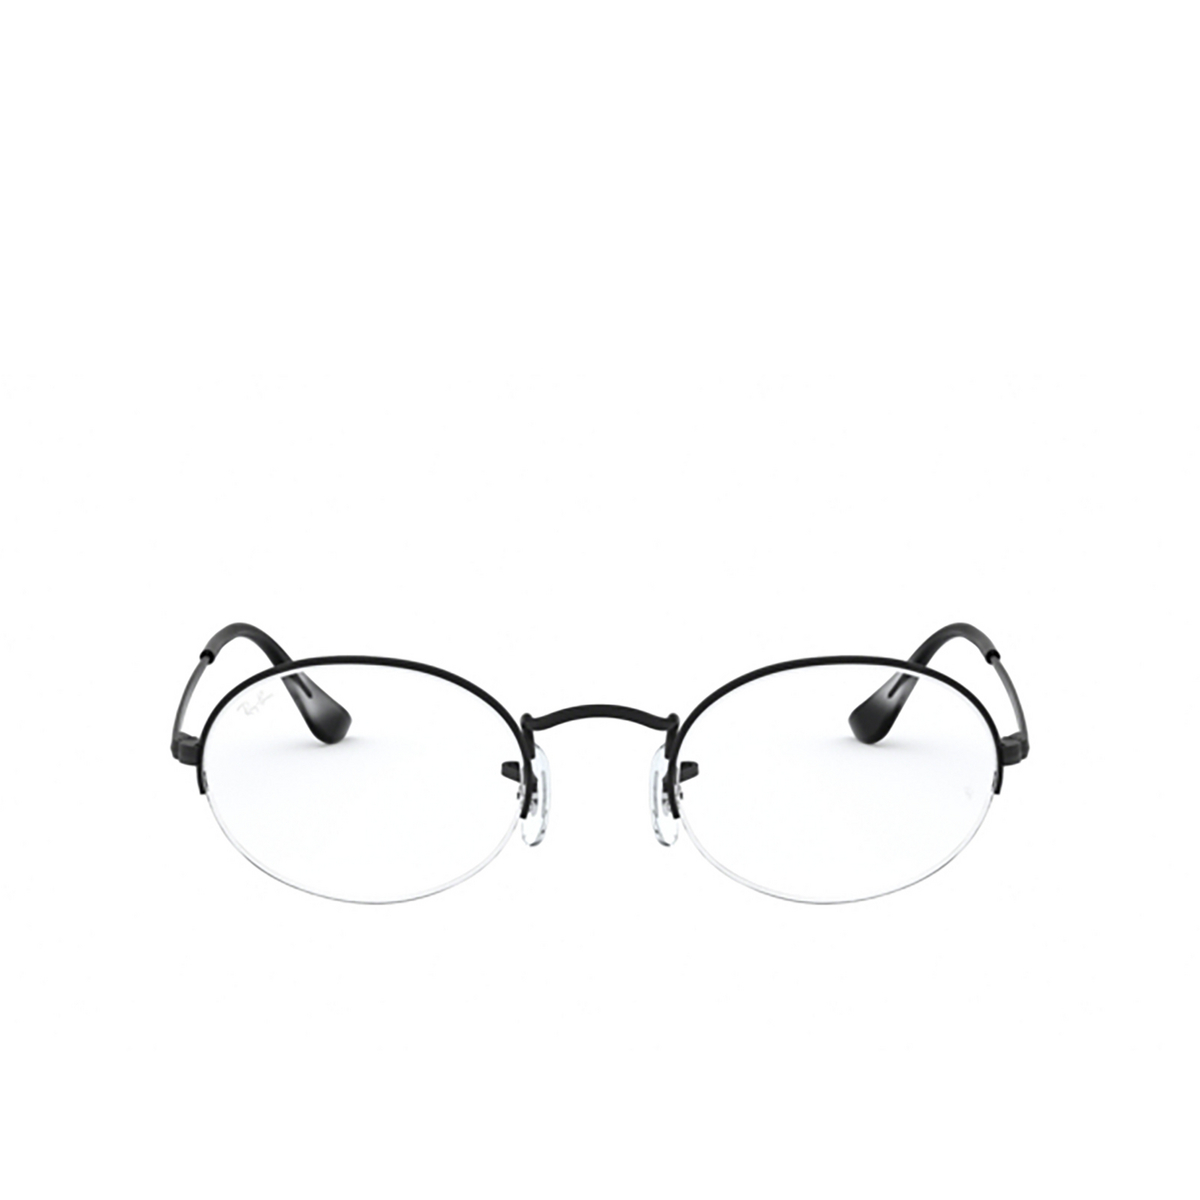 Ray-Ban® Oval Eyeglasses: Oval Gaze RX6547 color Matte Black 2503 - front view.